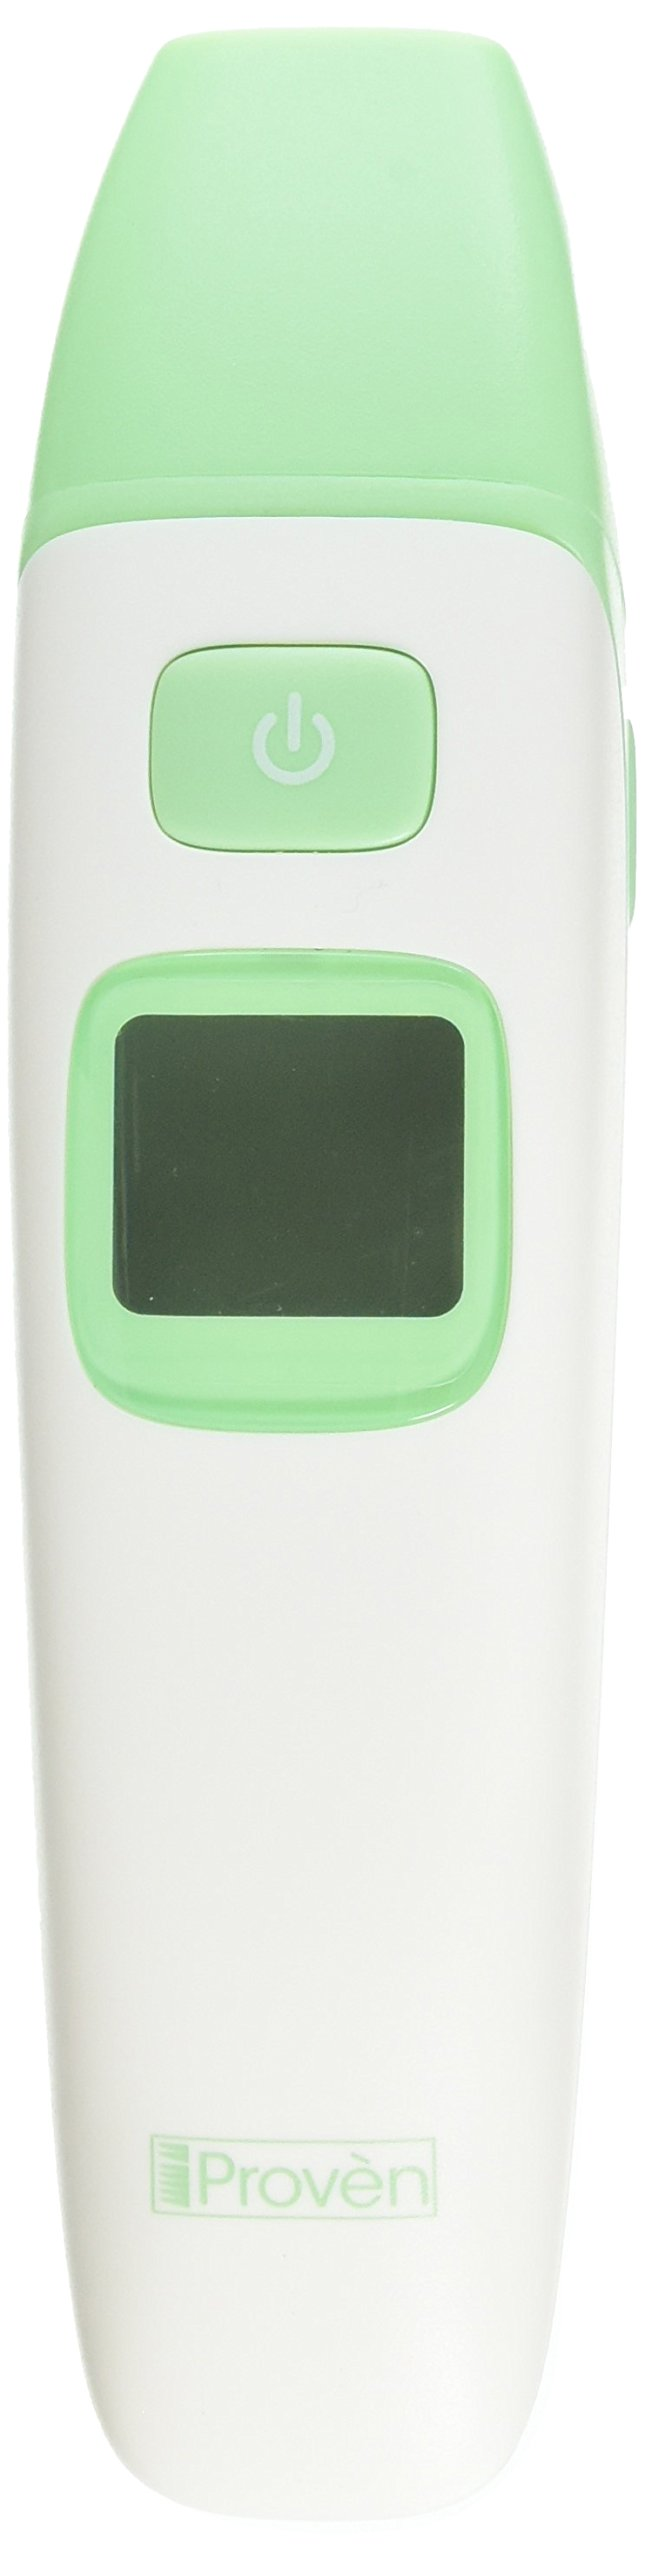 Baby Forehead and Ear Thermometer - iProvèn Triple Mode Thermometer TMT-215 - With Object Mode - Easy to use for your Newborn - Quick Read and No Touch - With Fever Warning and Mute Function